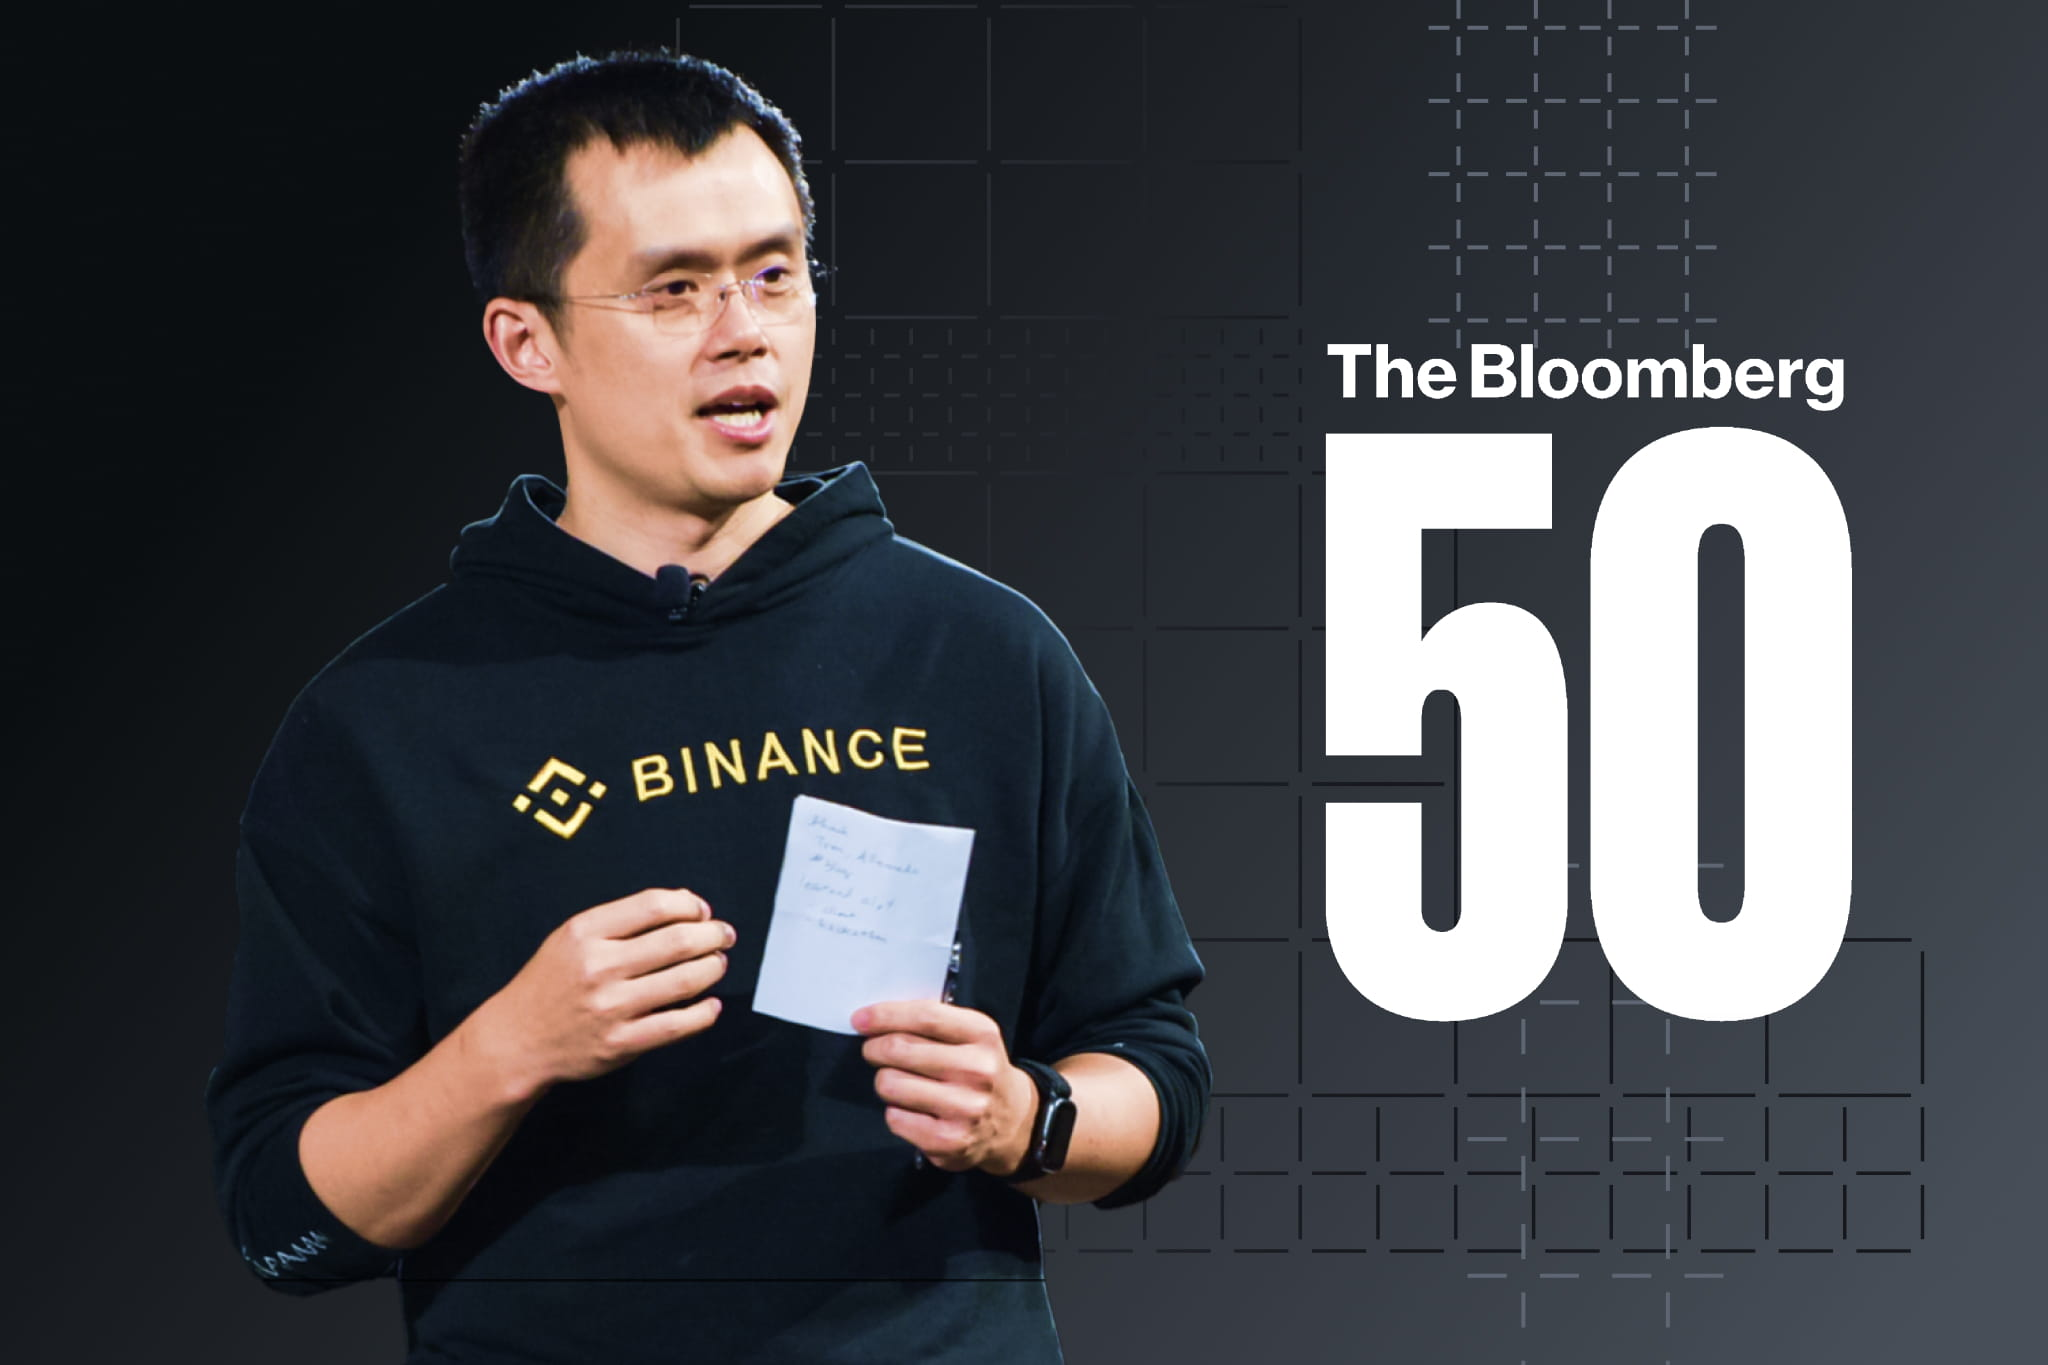 Binance CEO 'CZ' Honored in 2020 Bloomberg 50 List of Global Icons and InnovatorsCryptocurrency Trading Signals, Strategies & Templates | DexStrats